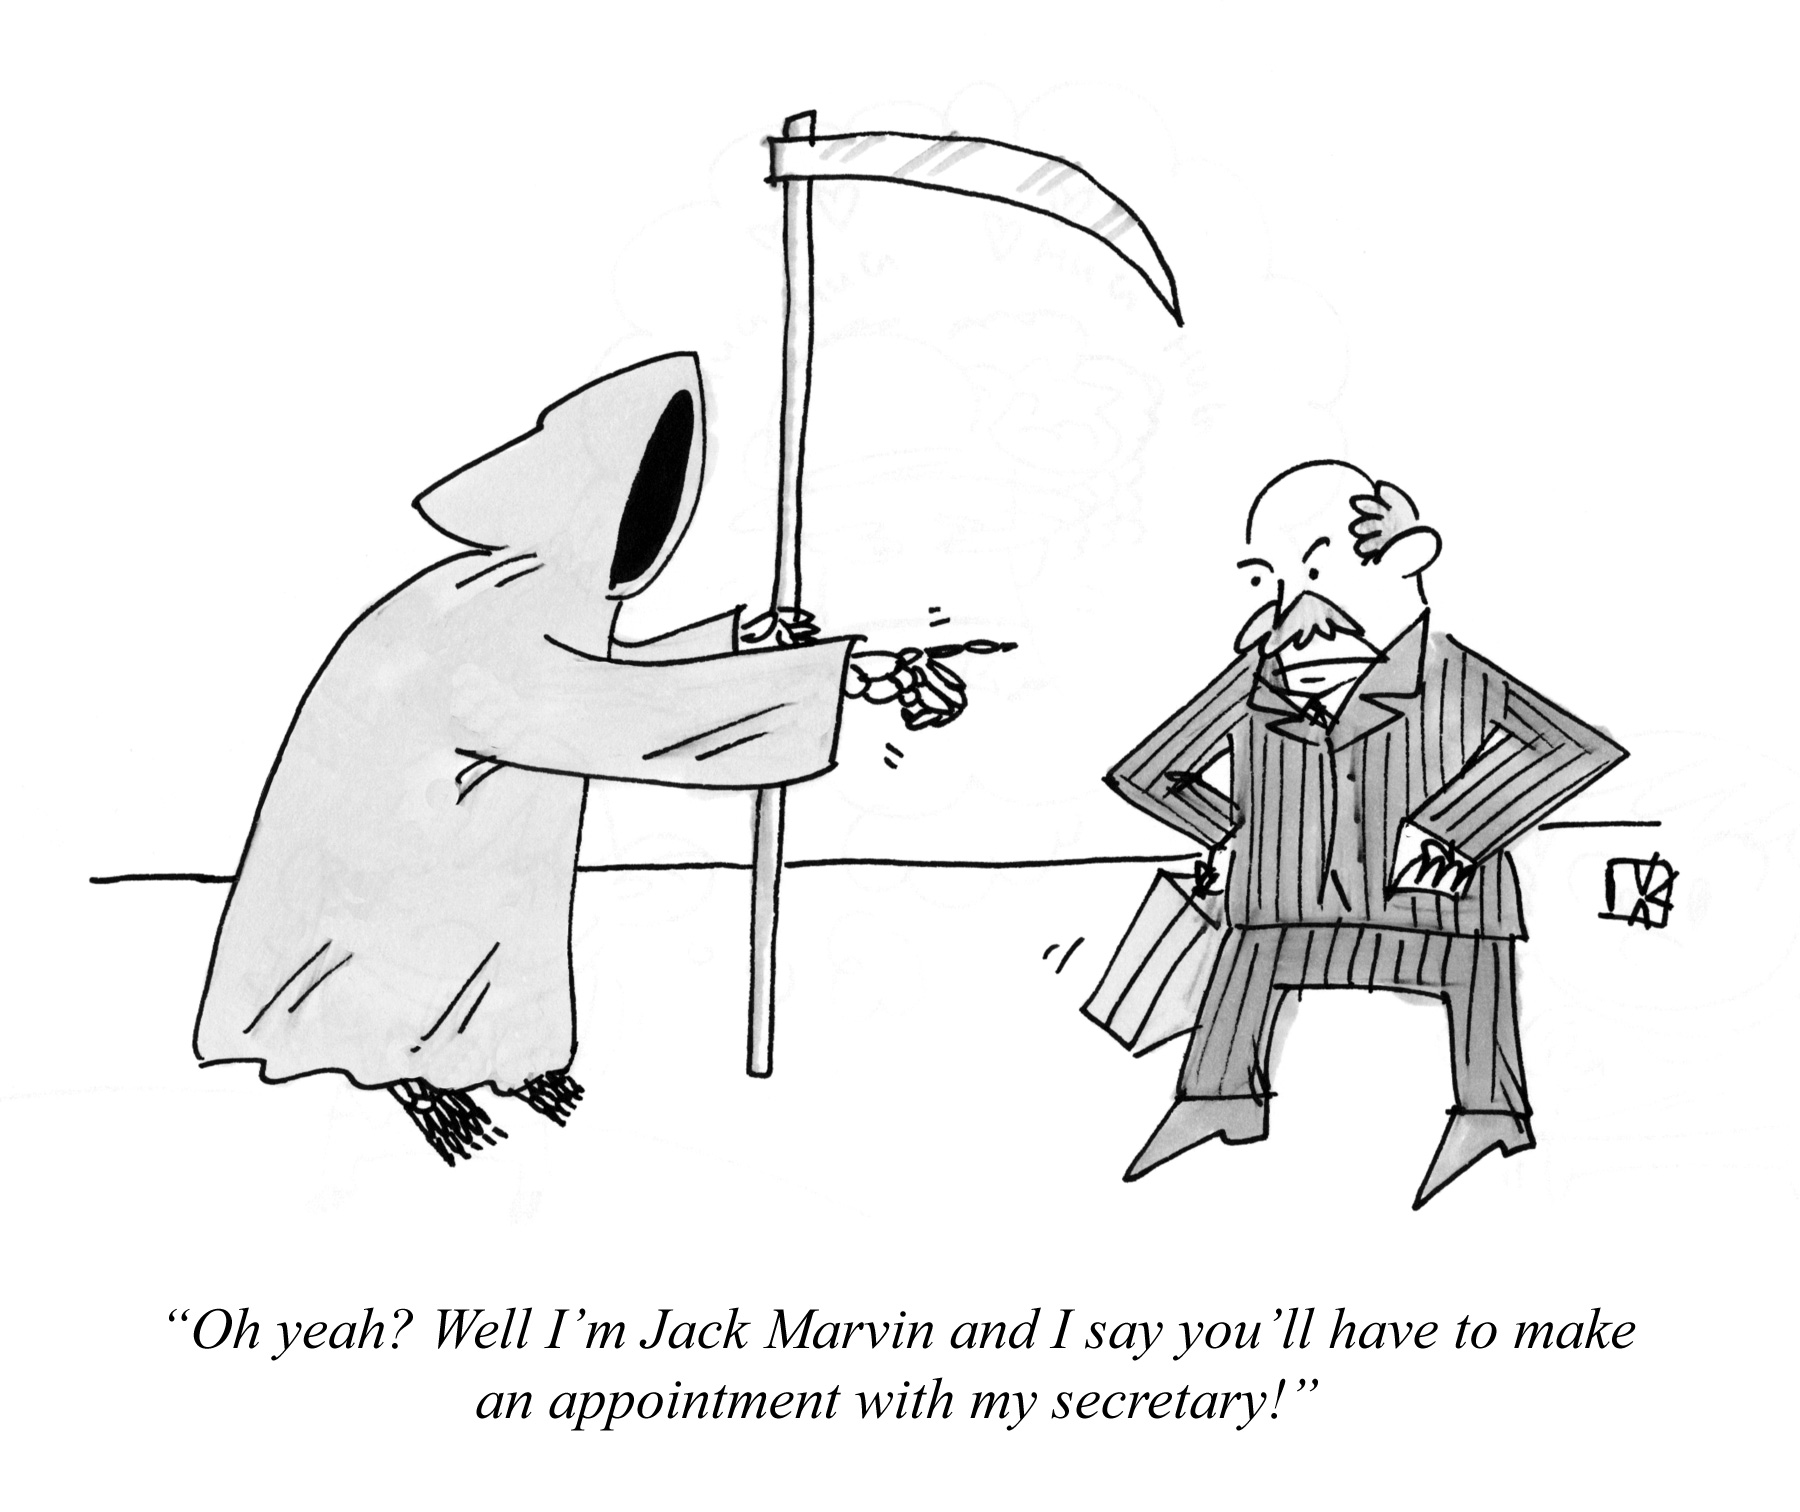 Oh yeah? Well I'm Jack Marvin and I say you'll have to make an appointment with my secretary!